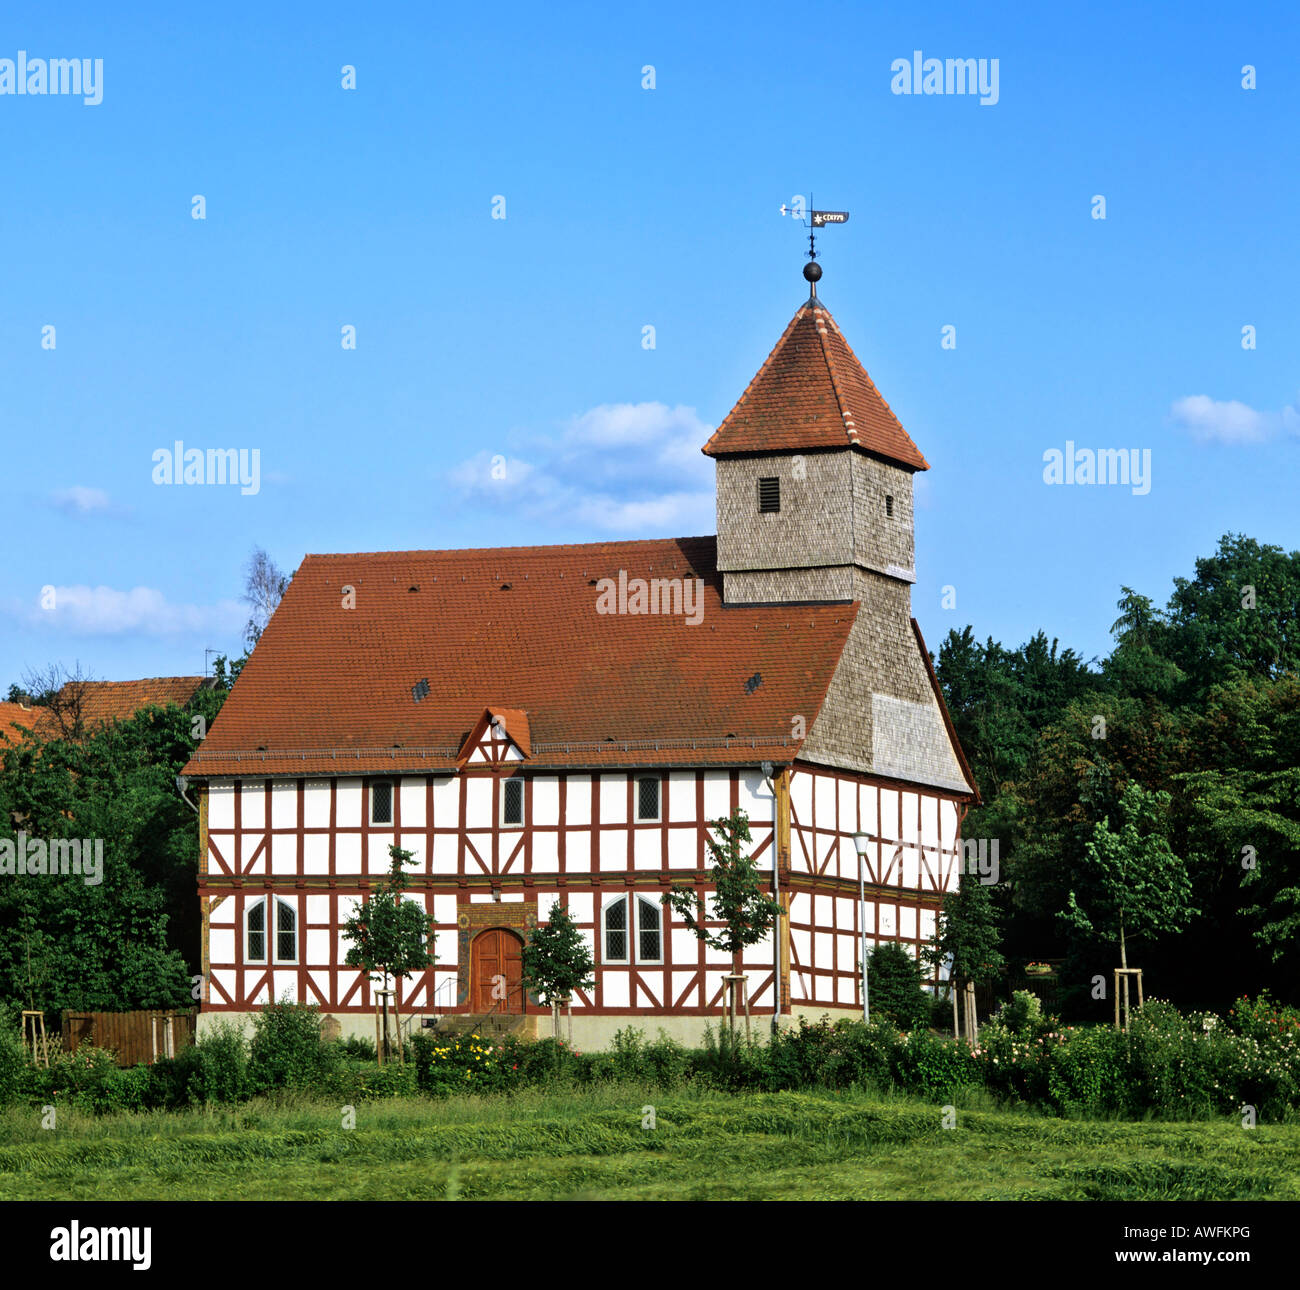 Fachwerk-style church dating to 1704 in Carlsdorf, Hesse, Germany, Europe - Stock Image